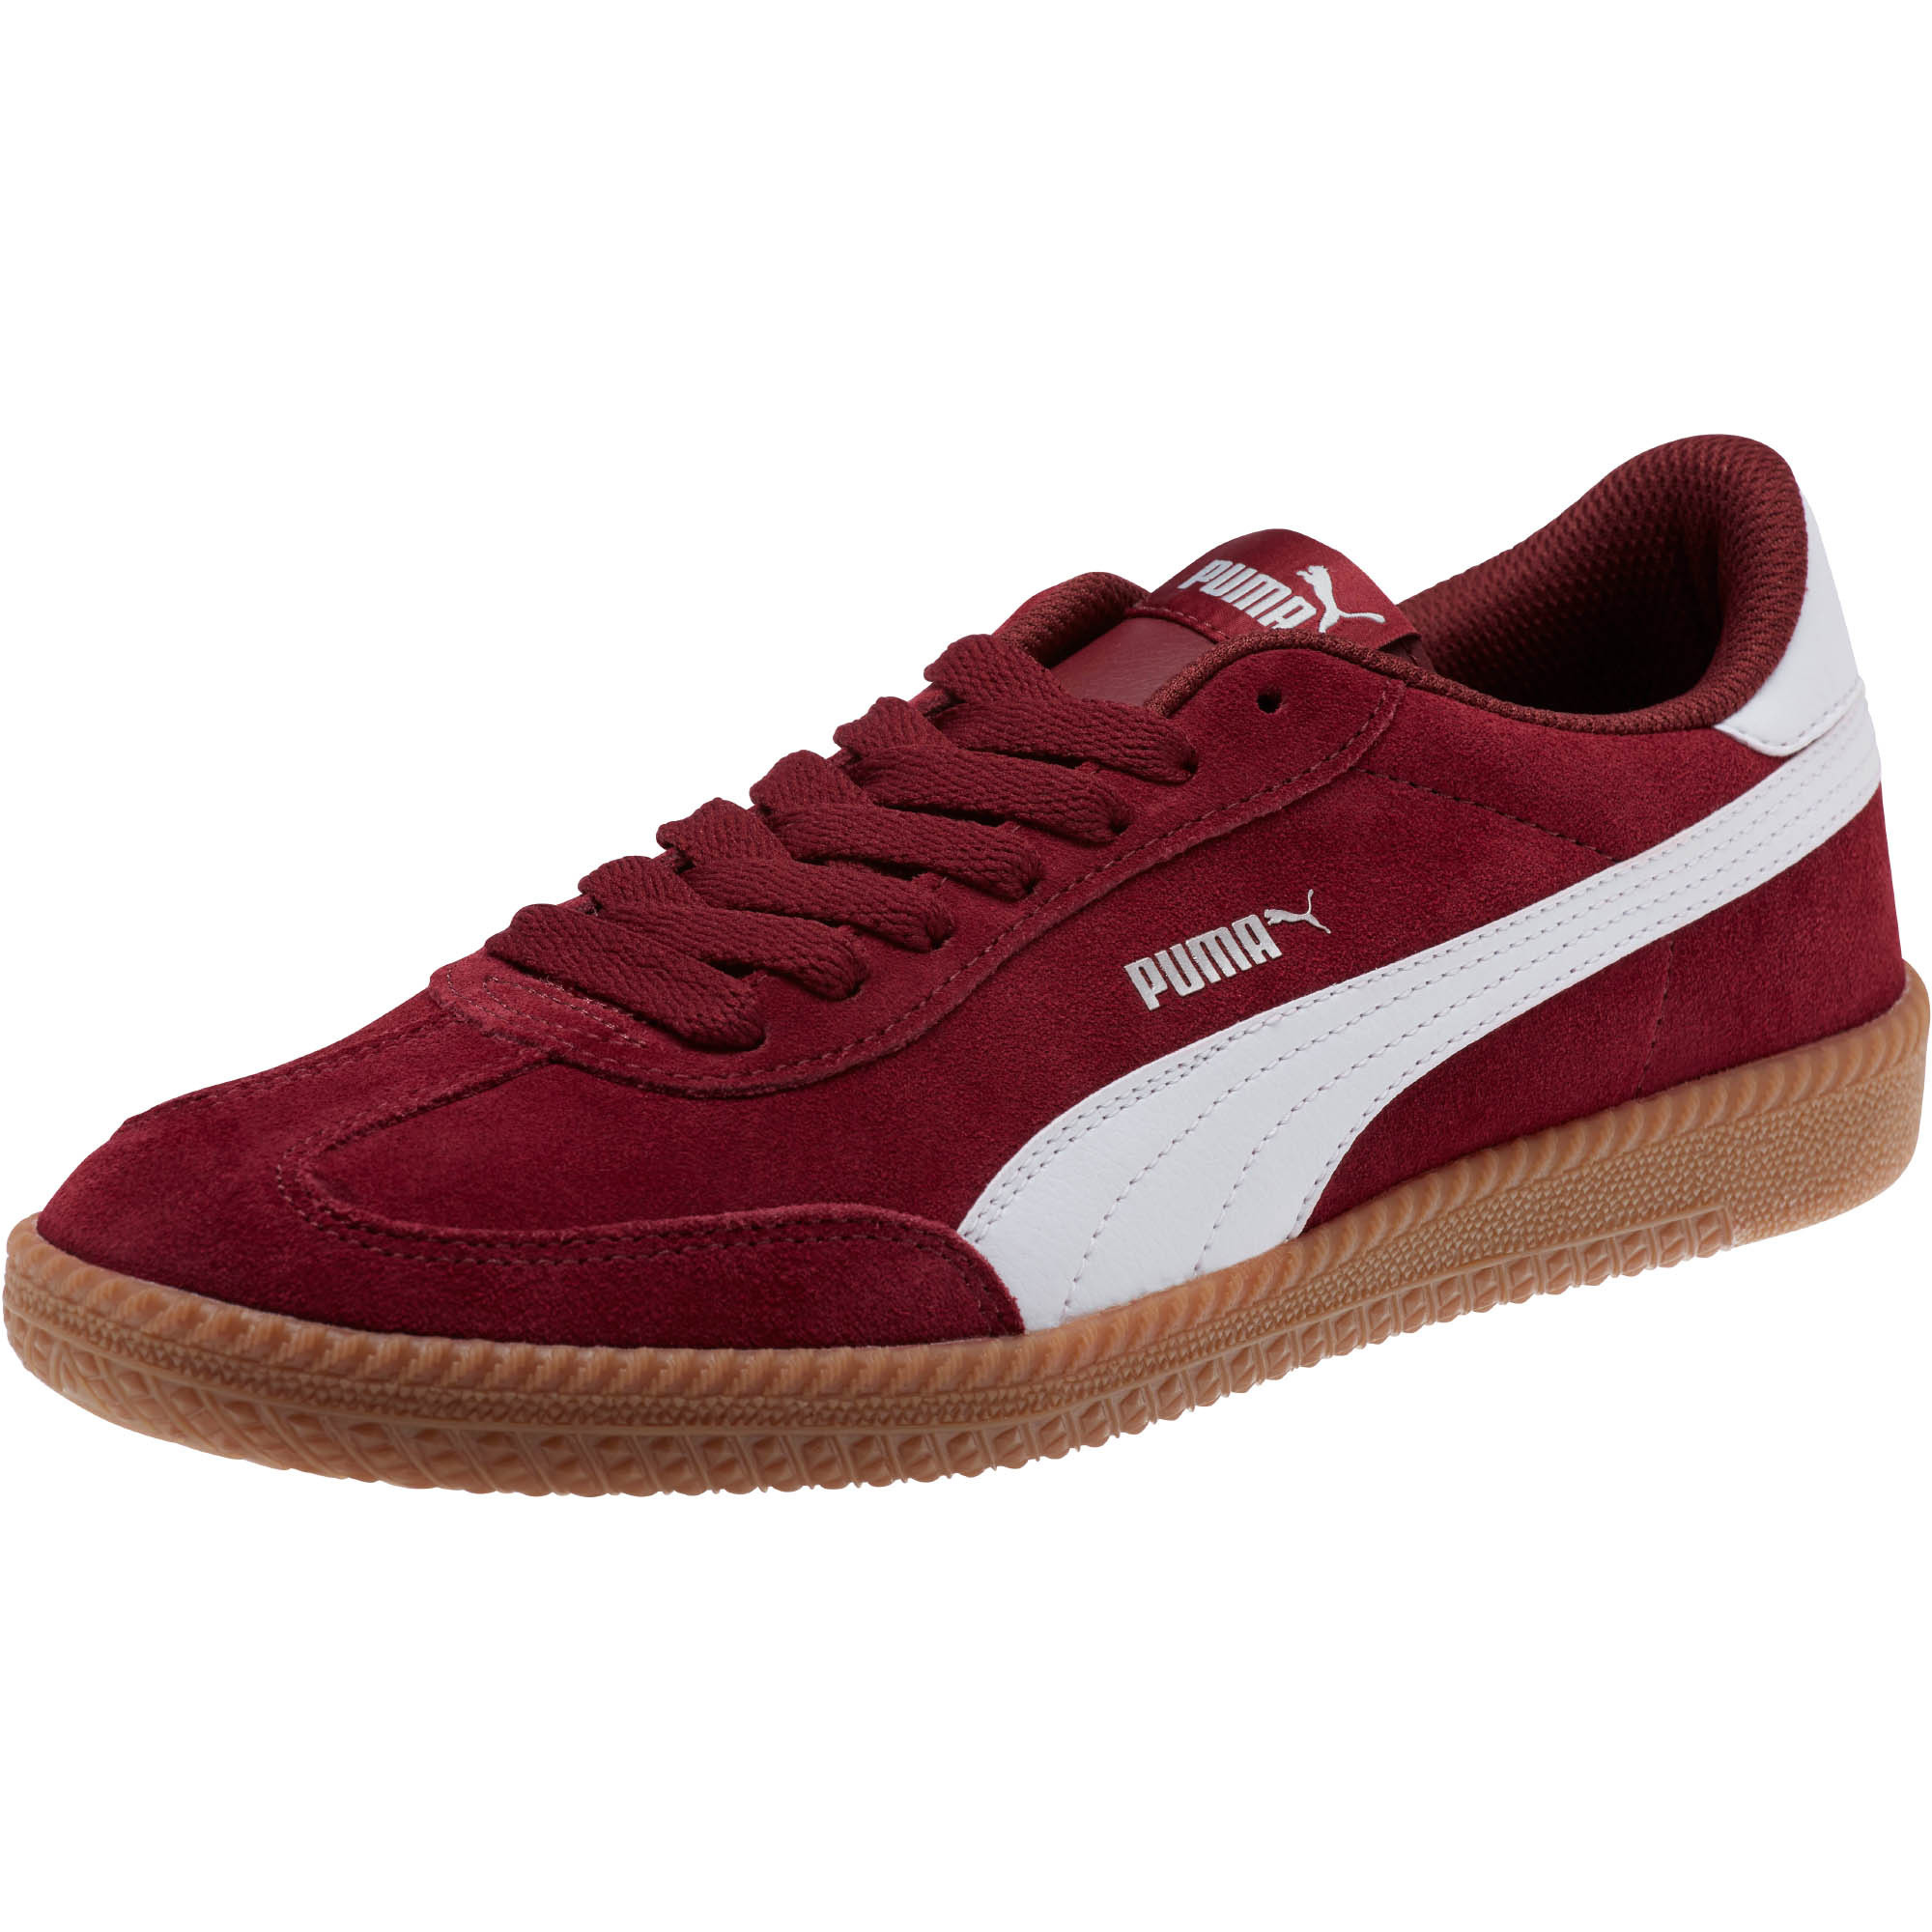 Official Puma Store: PUMA Astro Cup Suede Sneakers Men Shoe Basics |